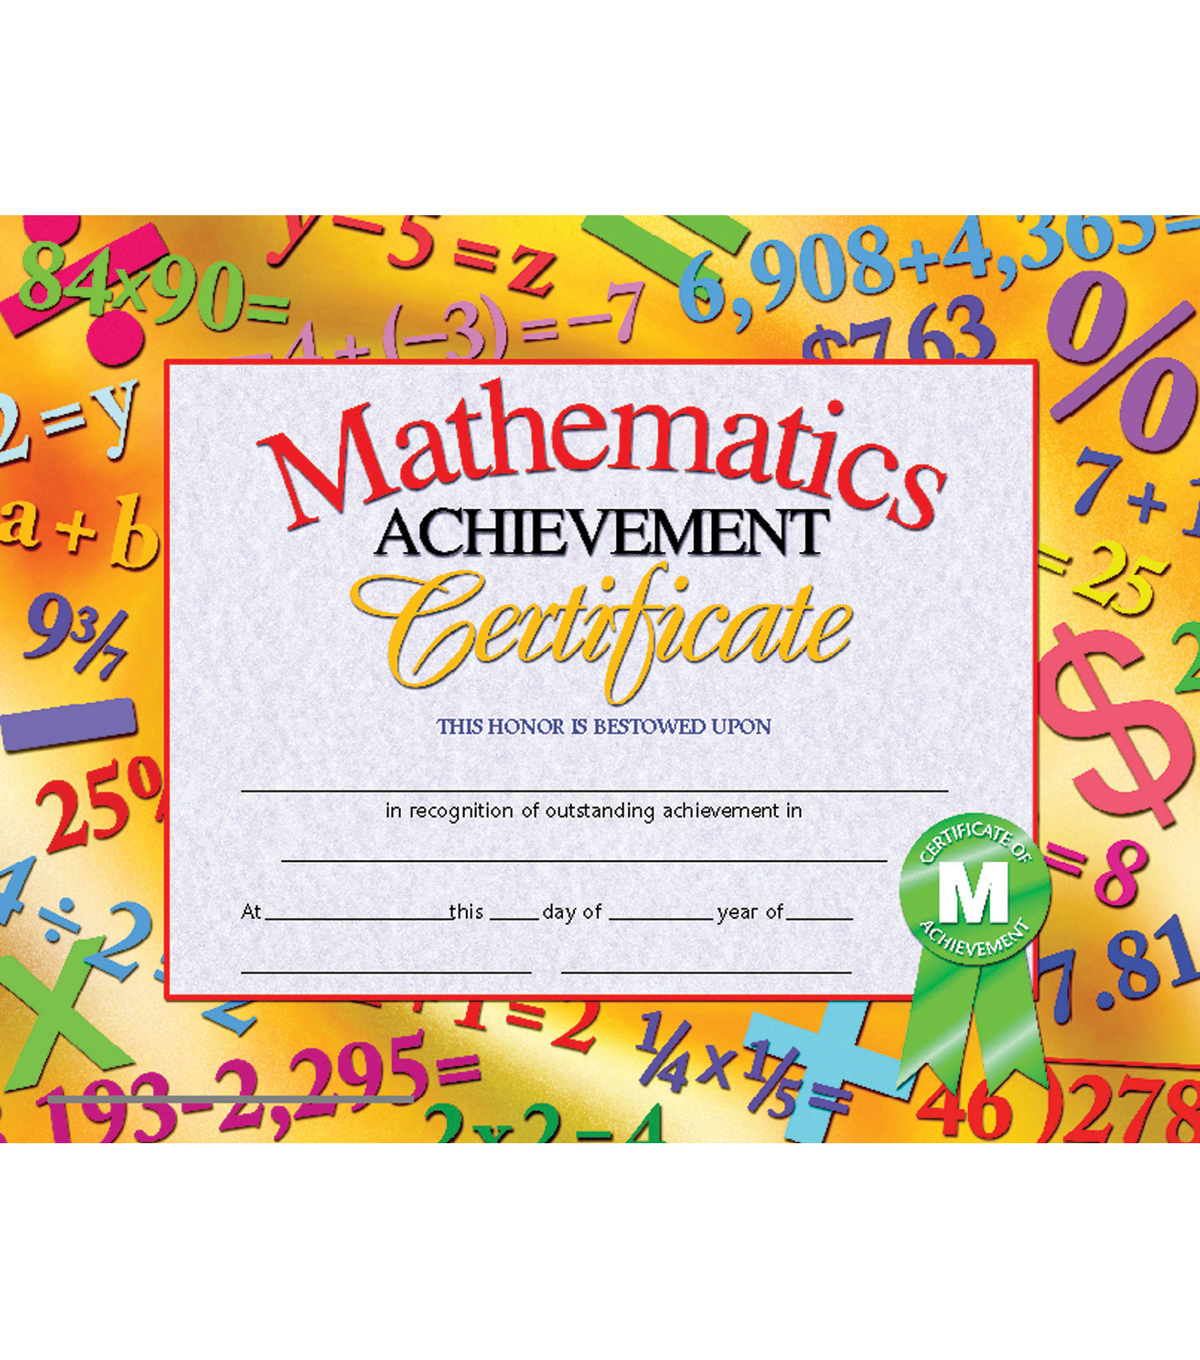 Hayes Mathematics Achievement Certificate, 30 Per Pack, 6 Packs